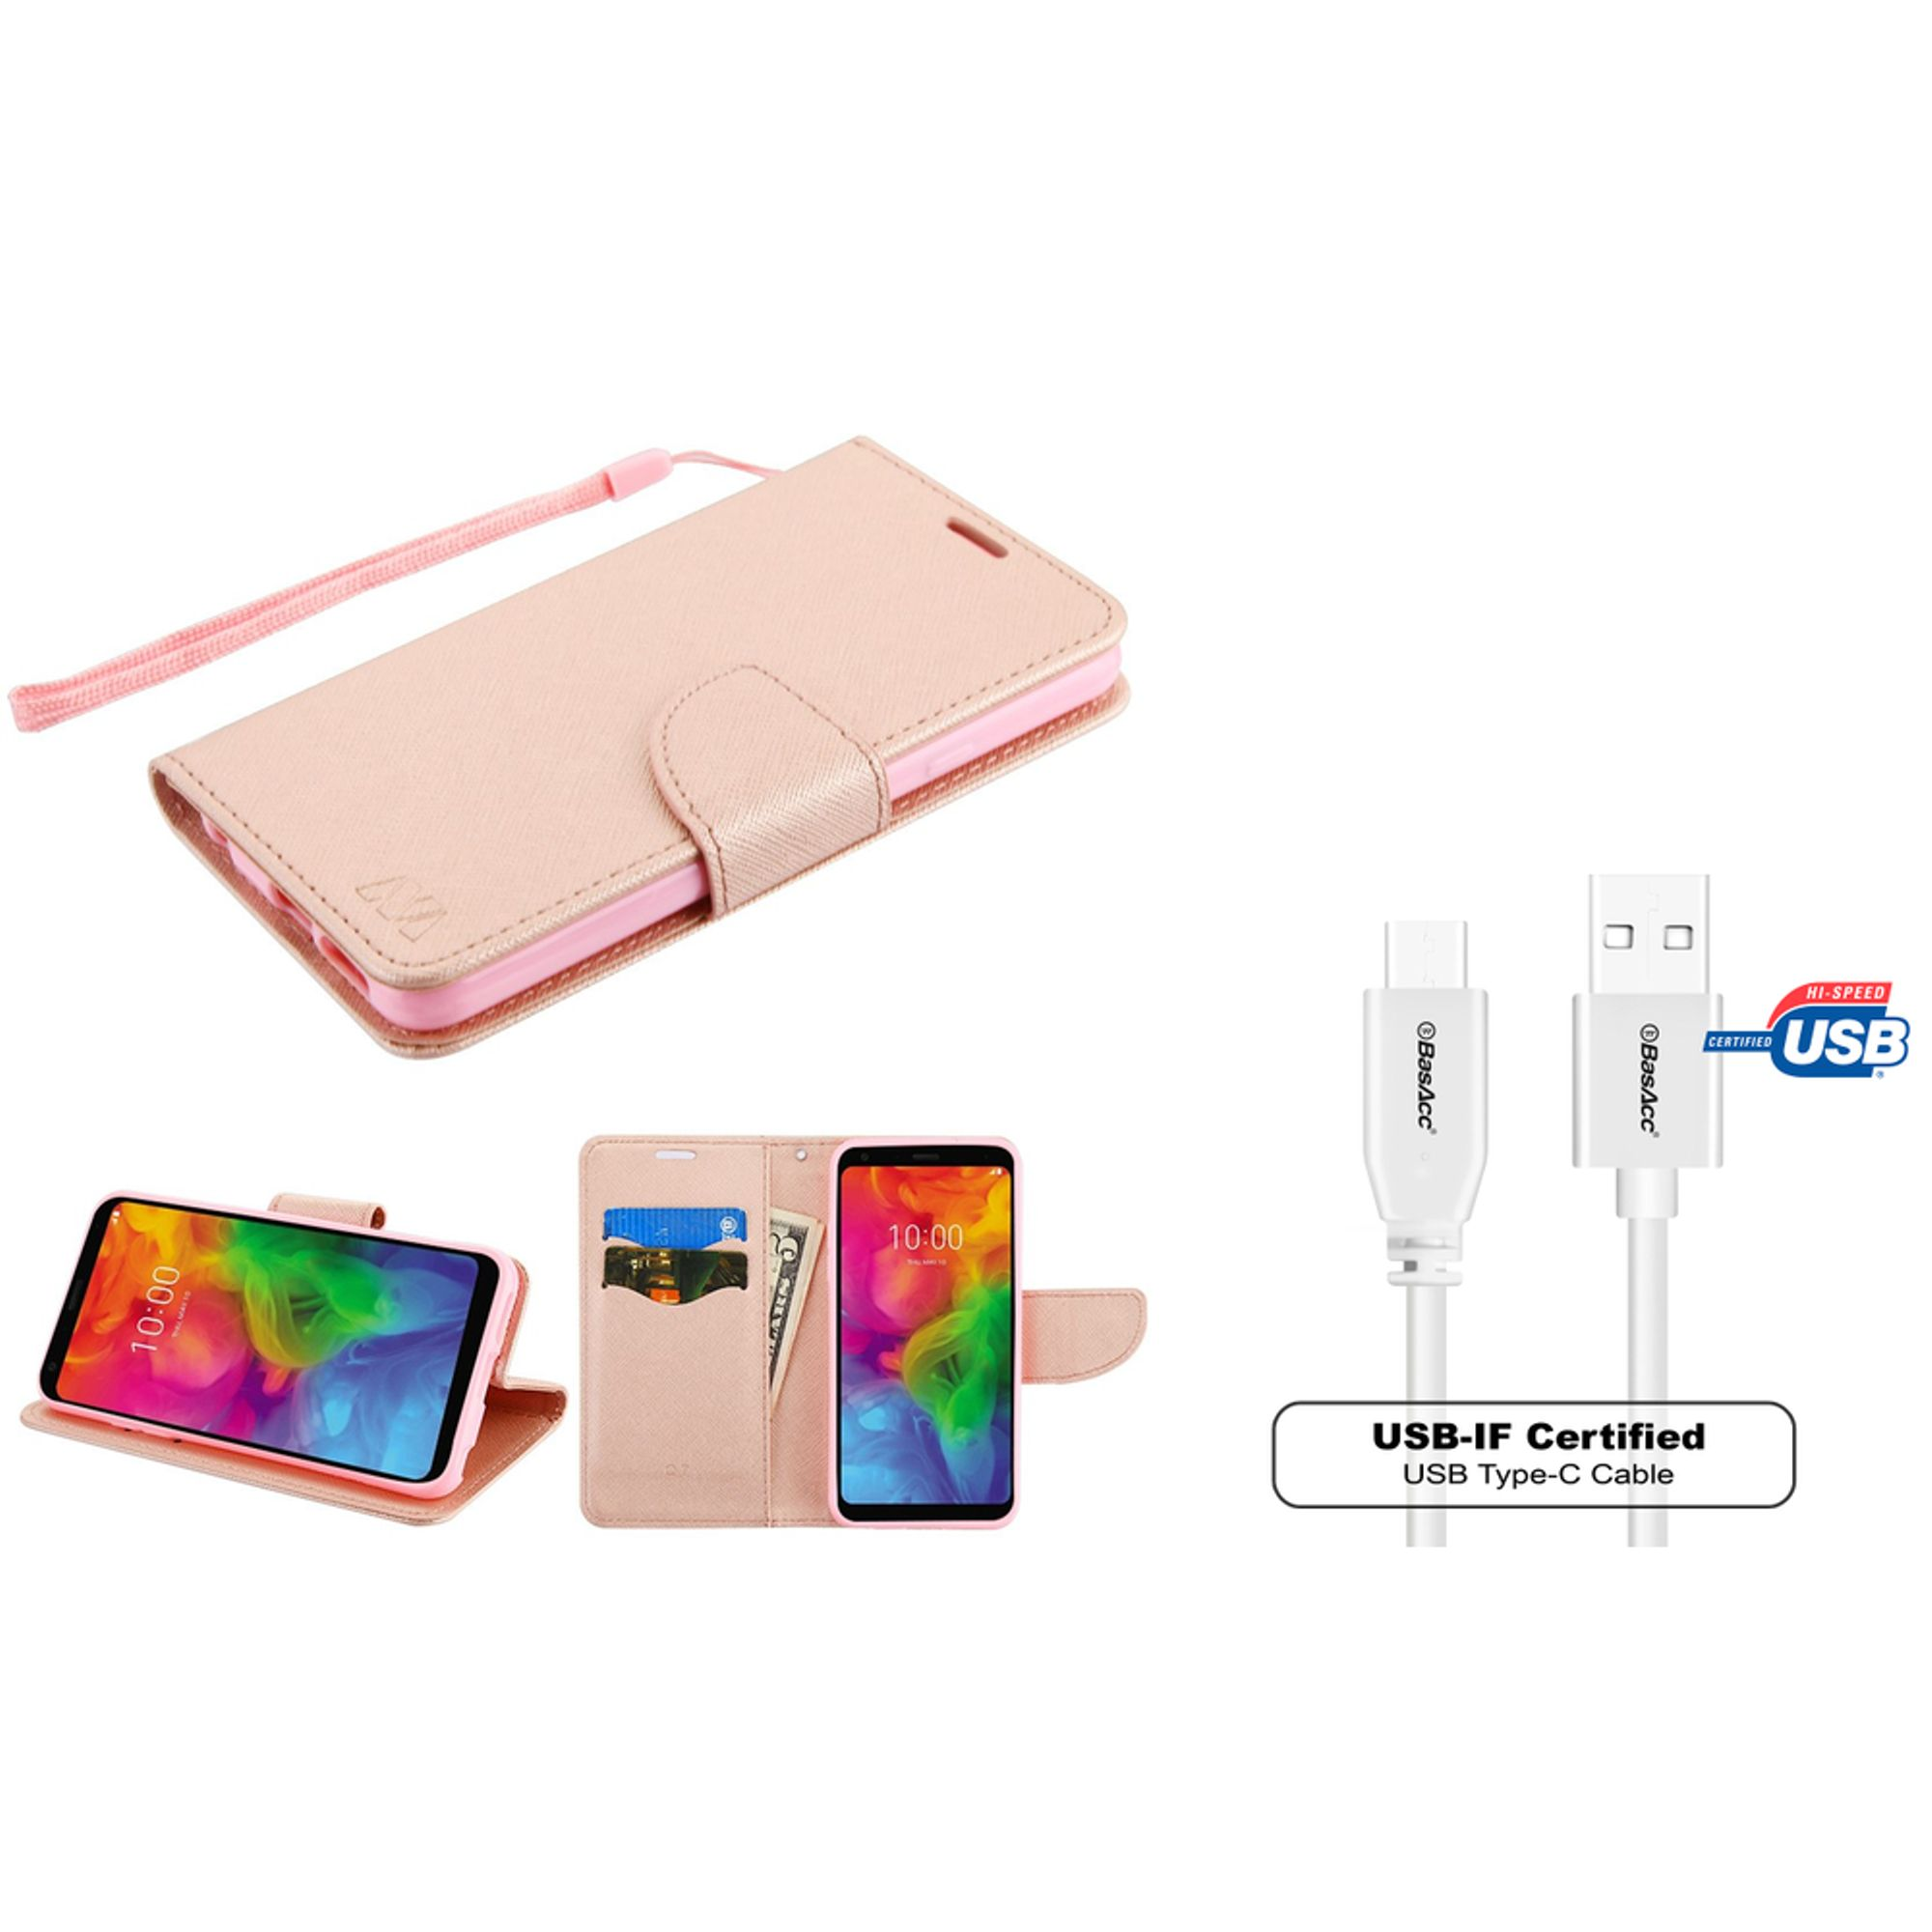 Insten Stand Folio Flip Leather Wallet Flap Pouch Case Cover For LG Q7/Q7 Plus - Rose Gold (Bundle with USB Type C Cable)